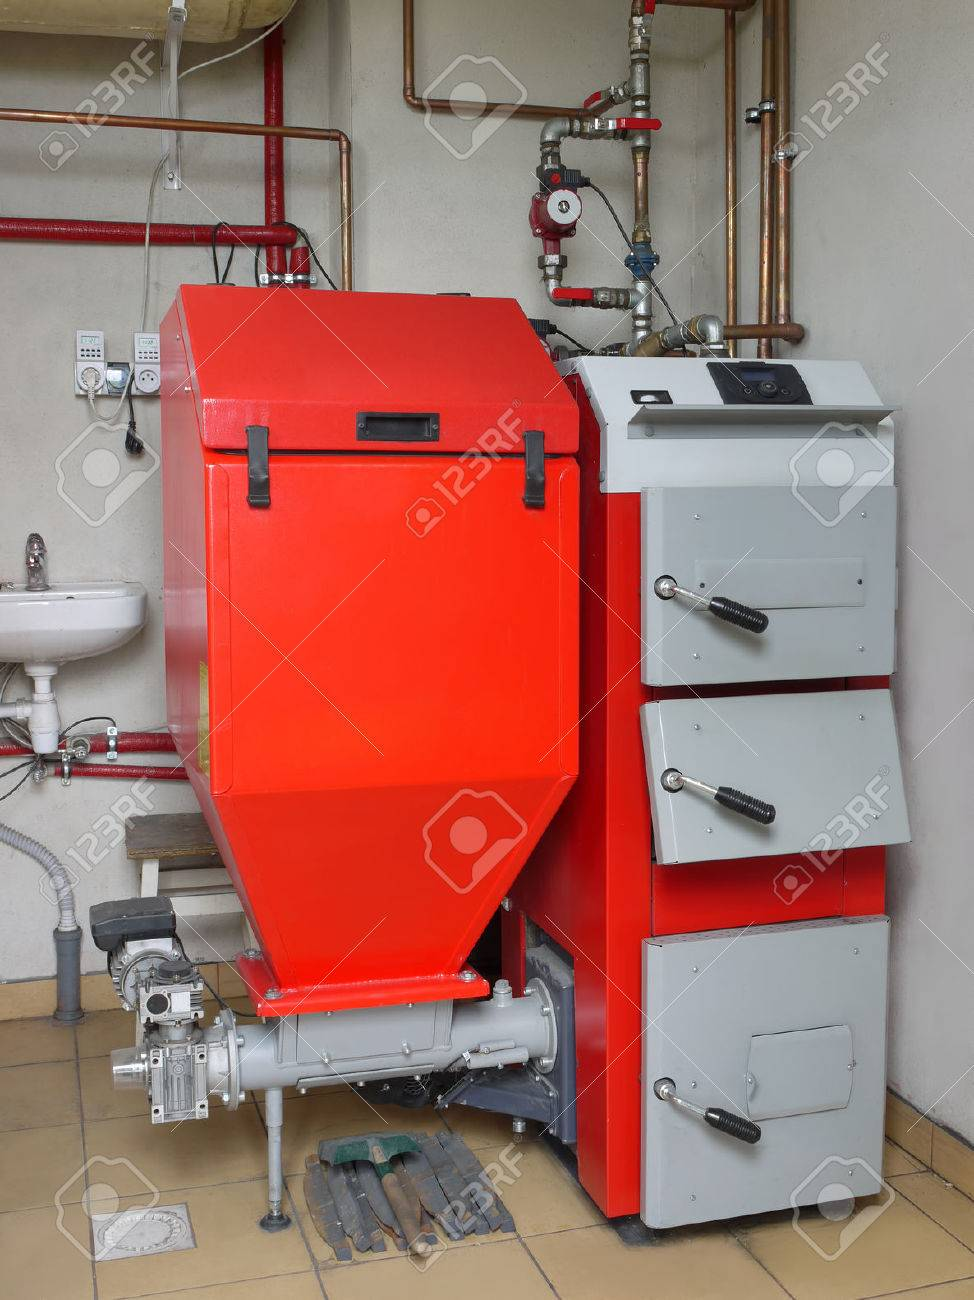 House Boiler Room With Coal-fired Central Heating Furnace System ...